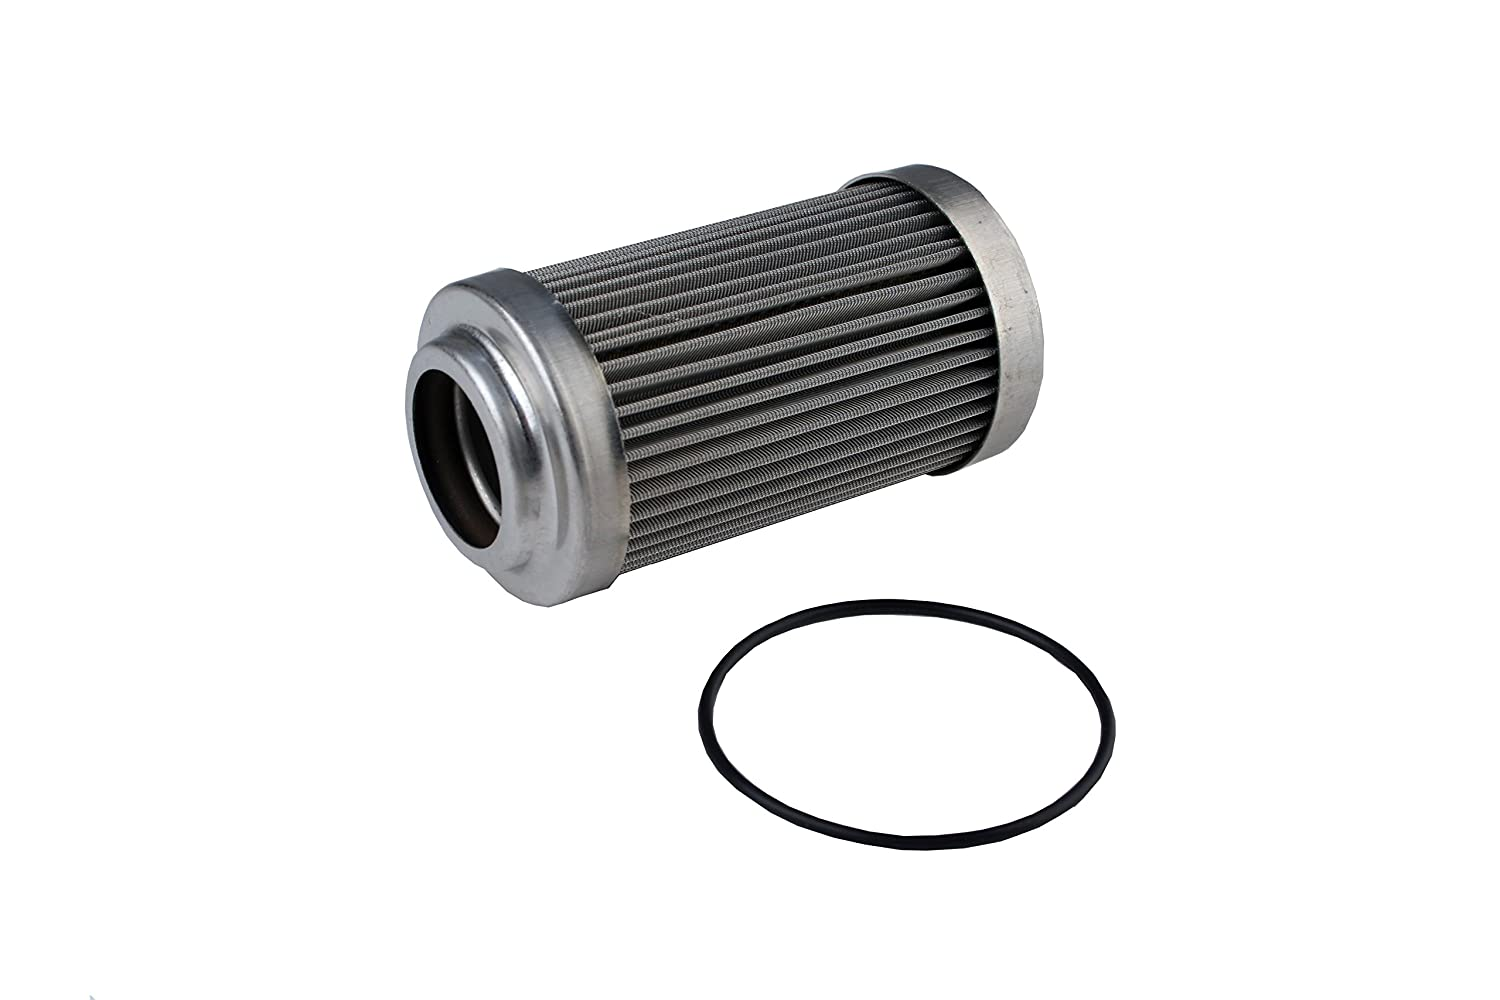 Aeromotive 12635 Replacement Filter Element, 40-Micron Stainless Mesh, Fits All 2 OD Filter Housings